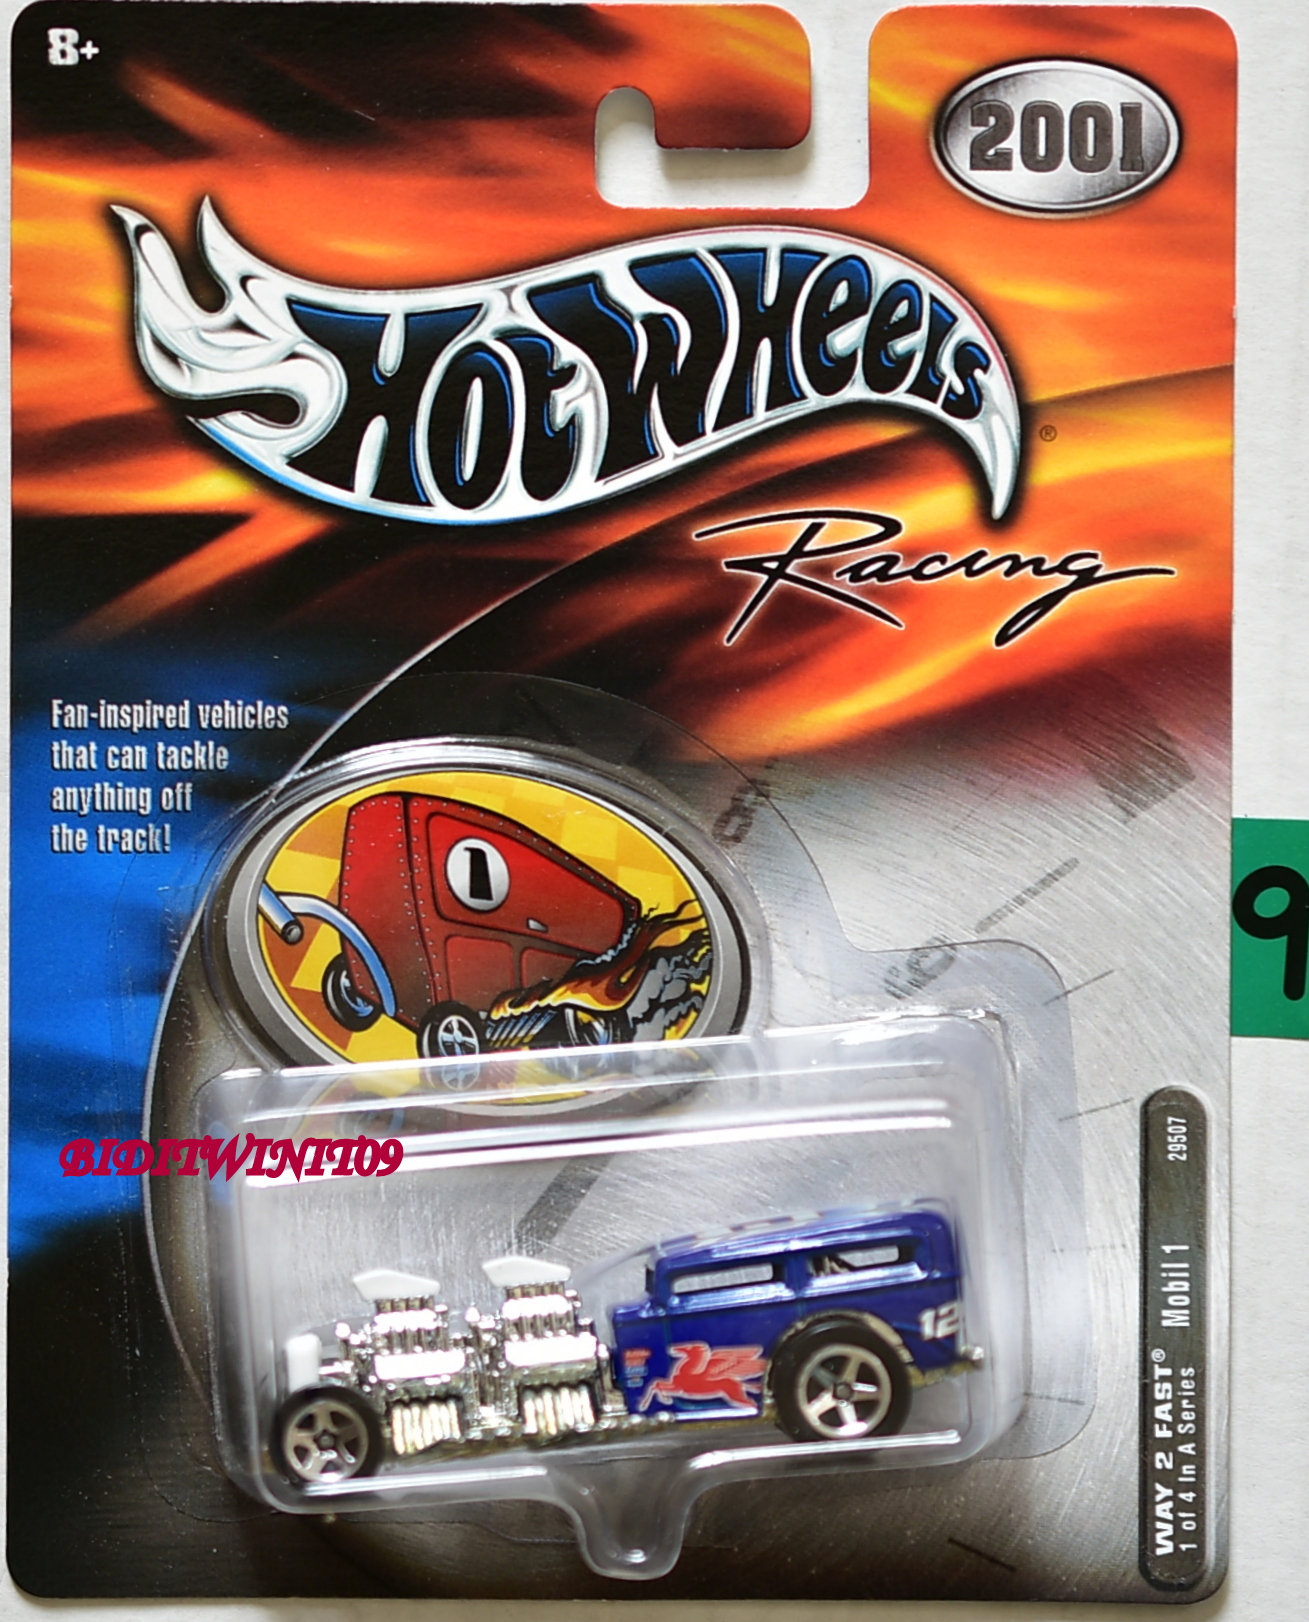 HOT WHEELS 2001 RACING WAY 2 FAST MOBIL 1 #1/4 E+